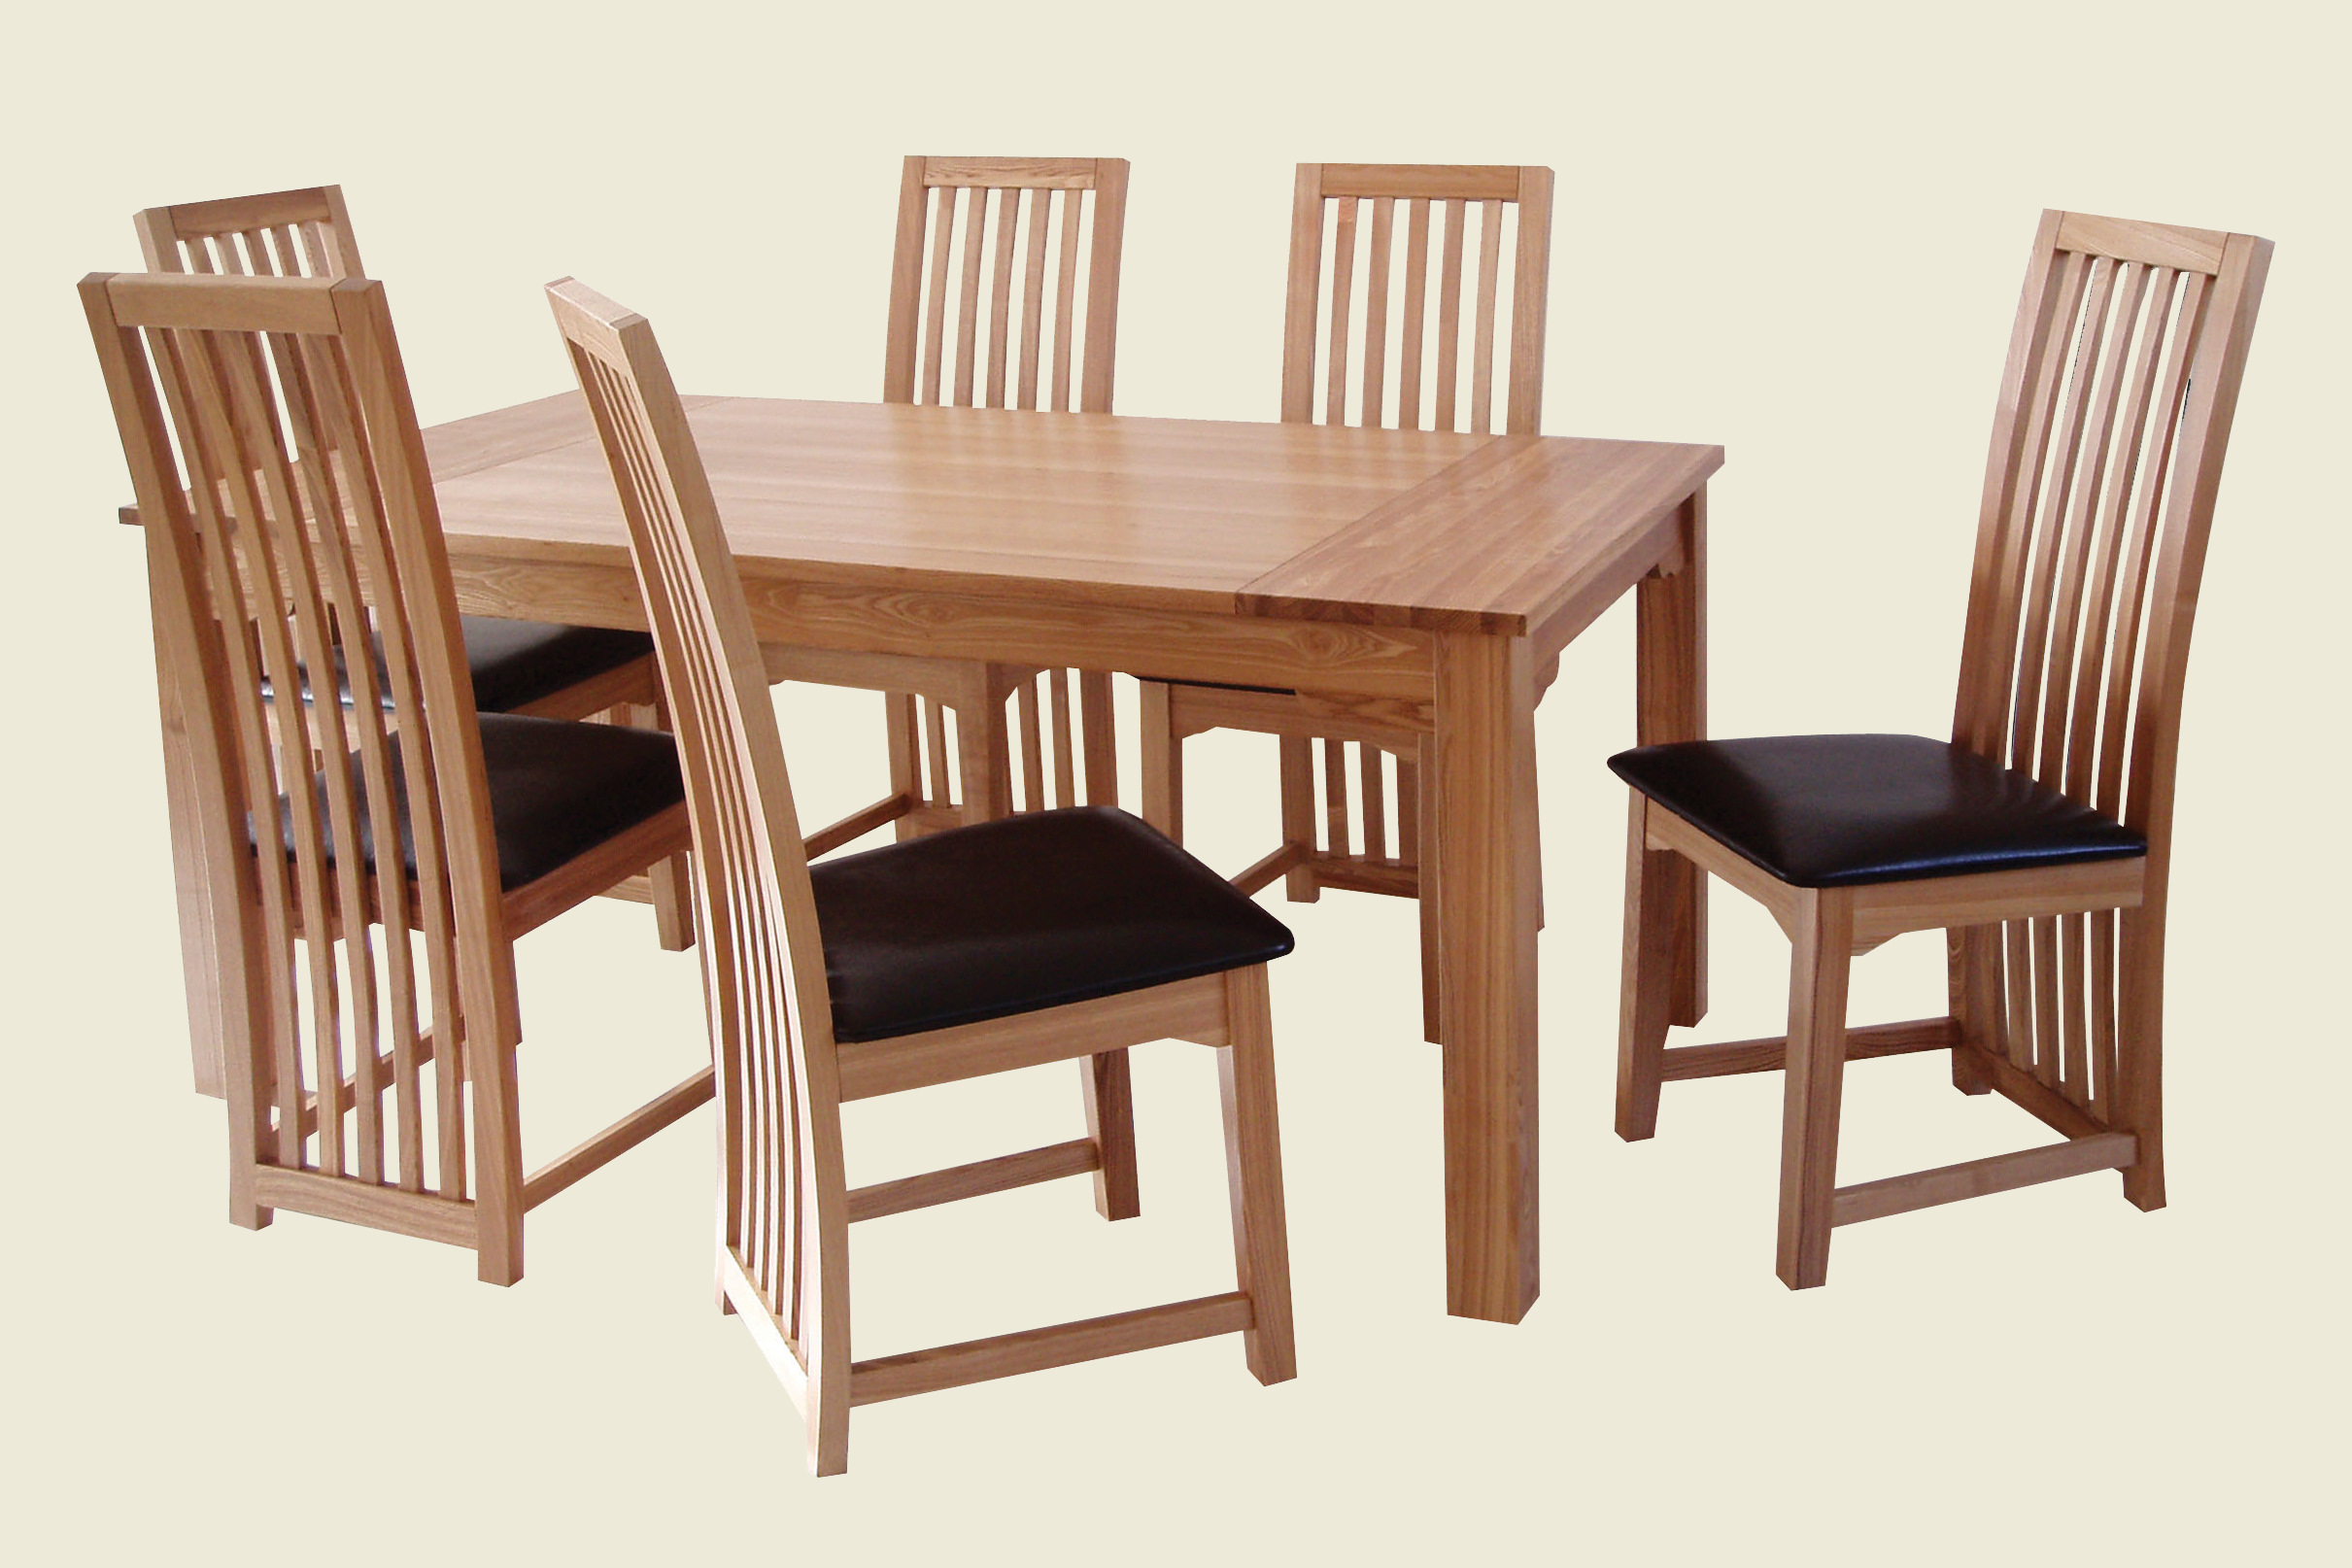 Outstanding Dining Table and Chair Sets 2421 x 1614 · 719 kB · jpeg